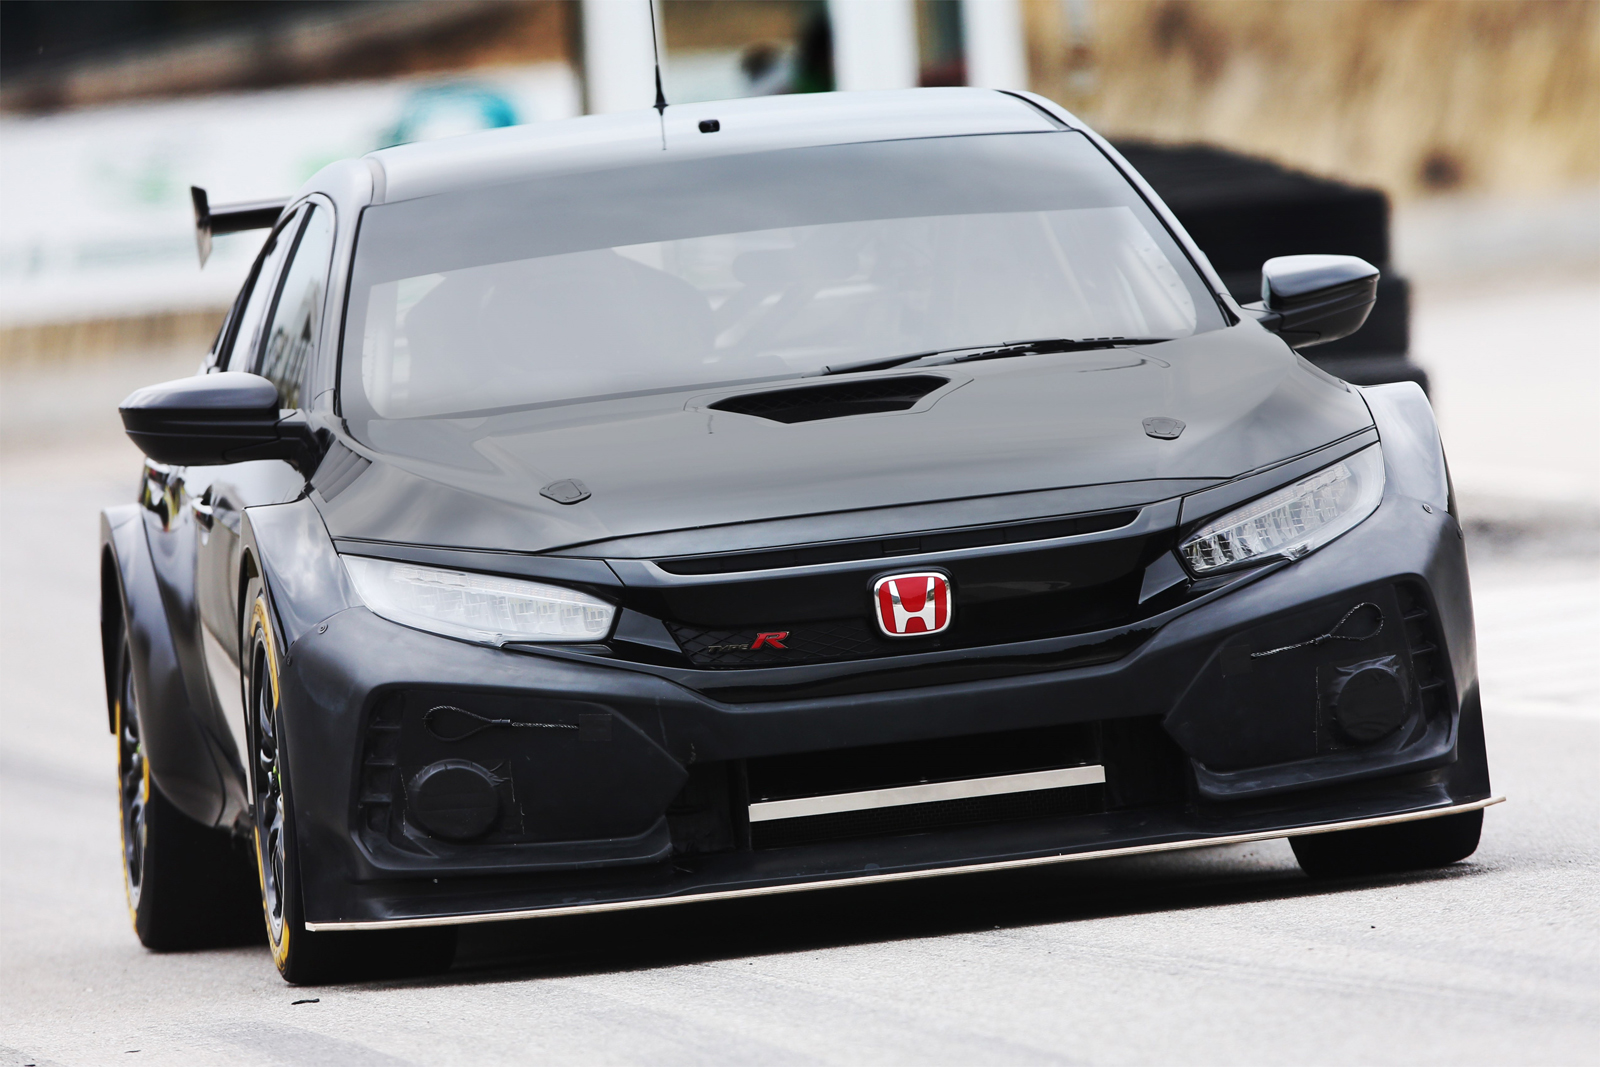 The Honda Fk8 Civic Type R Touring Race Car Makes You Want To Hide